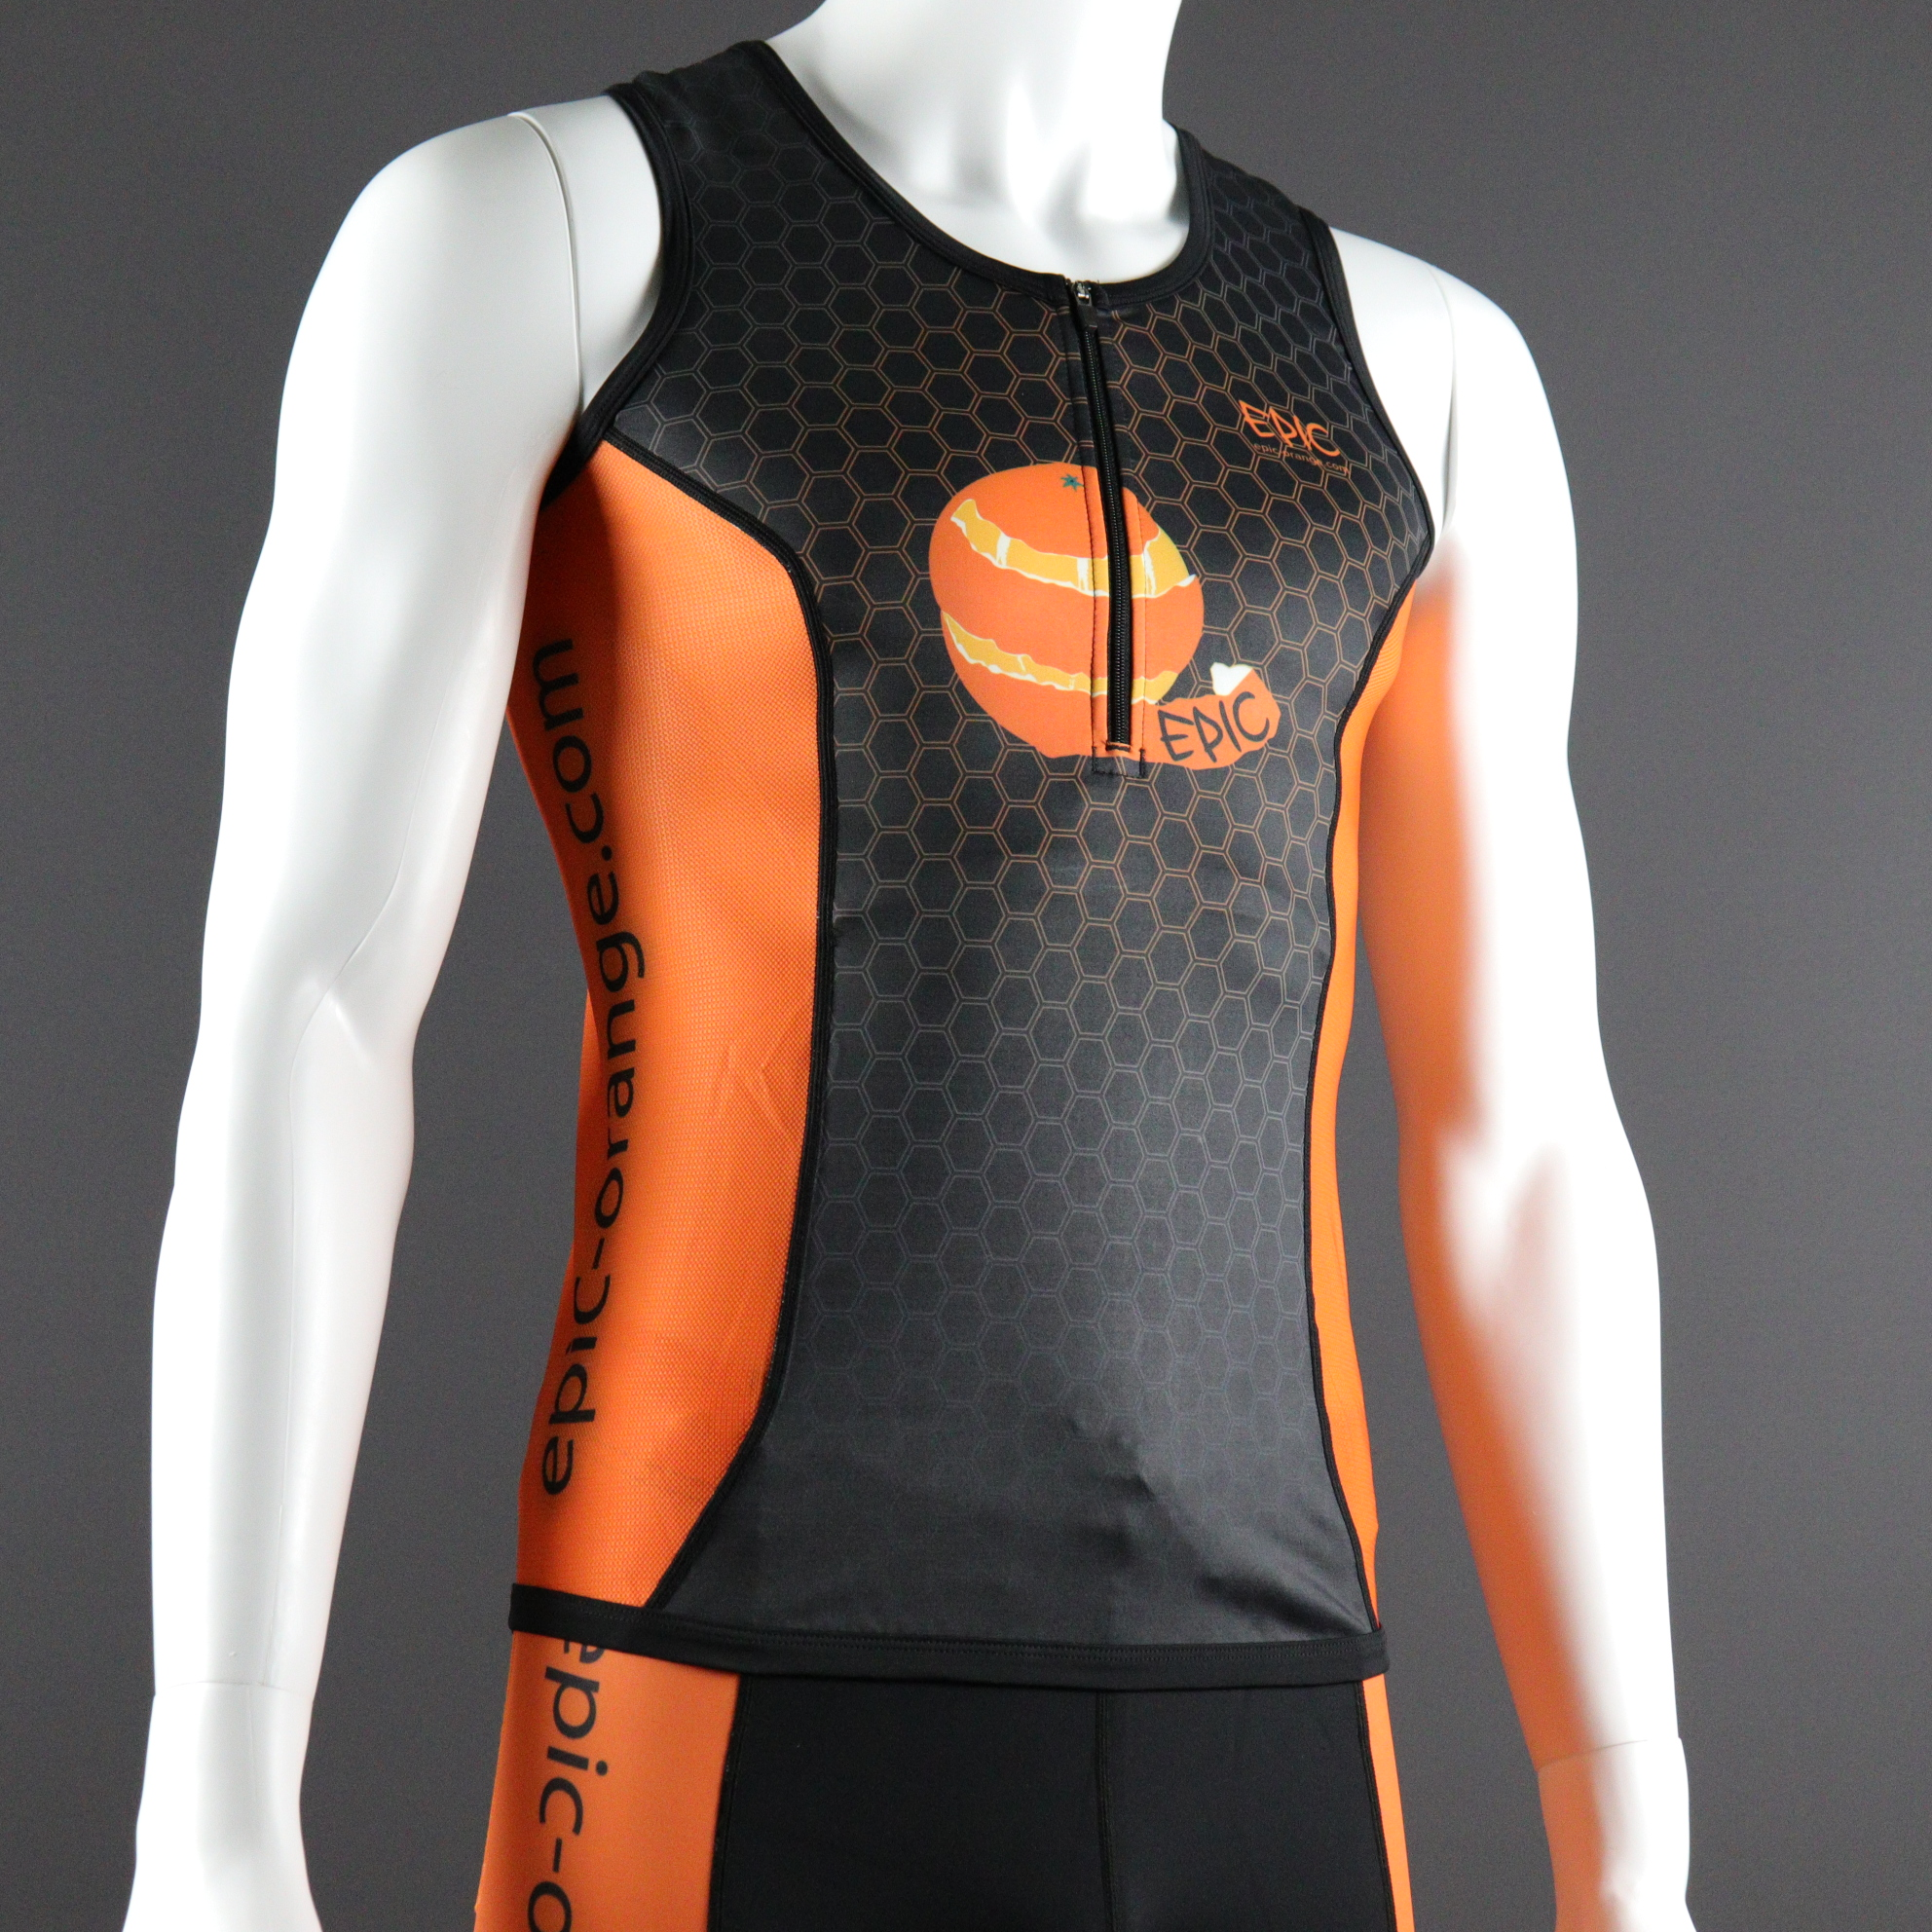 Custom Printed Endurance Triathlon Tops